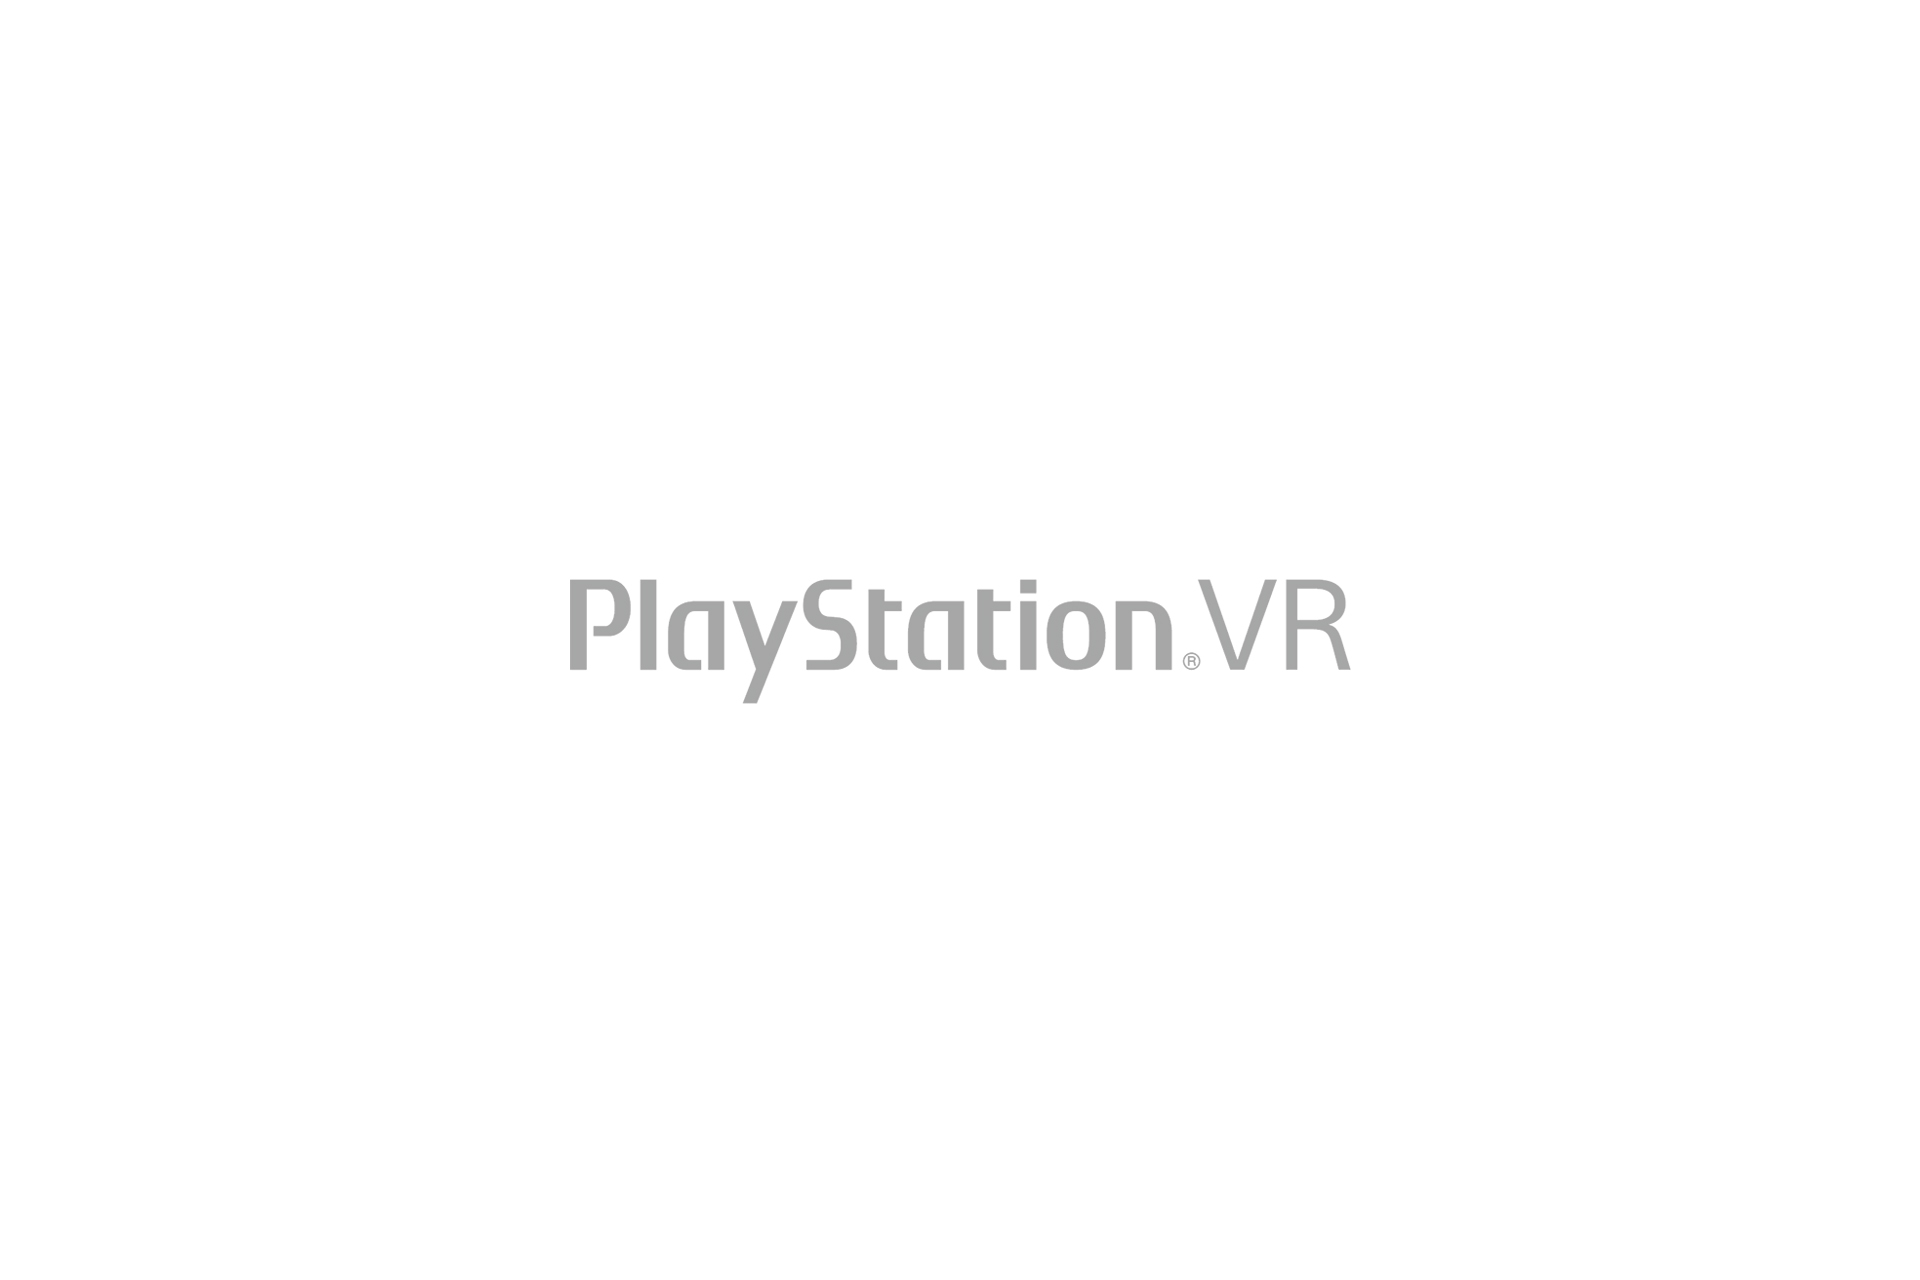 Playstation VR logo for PP website